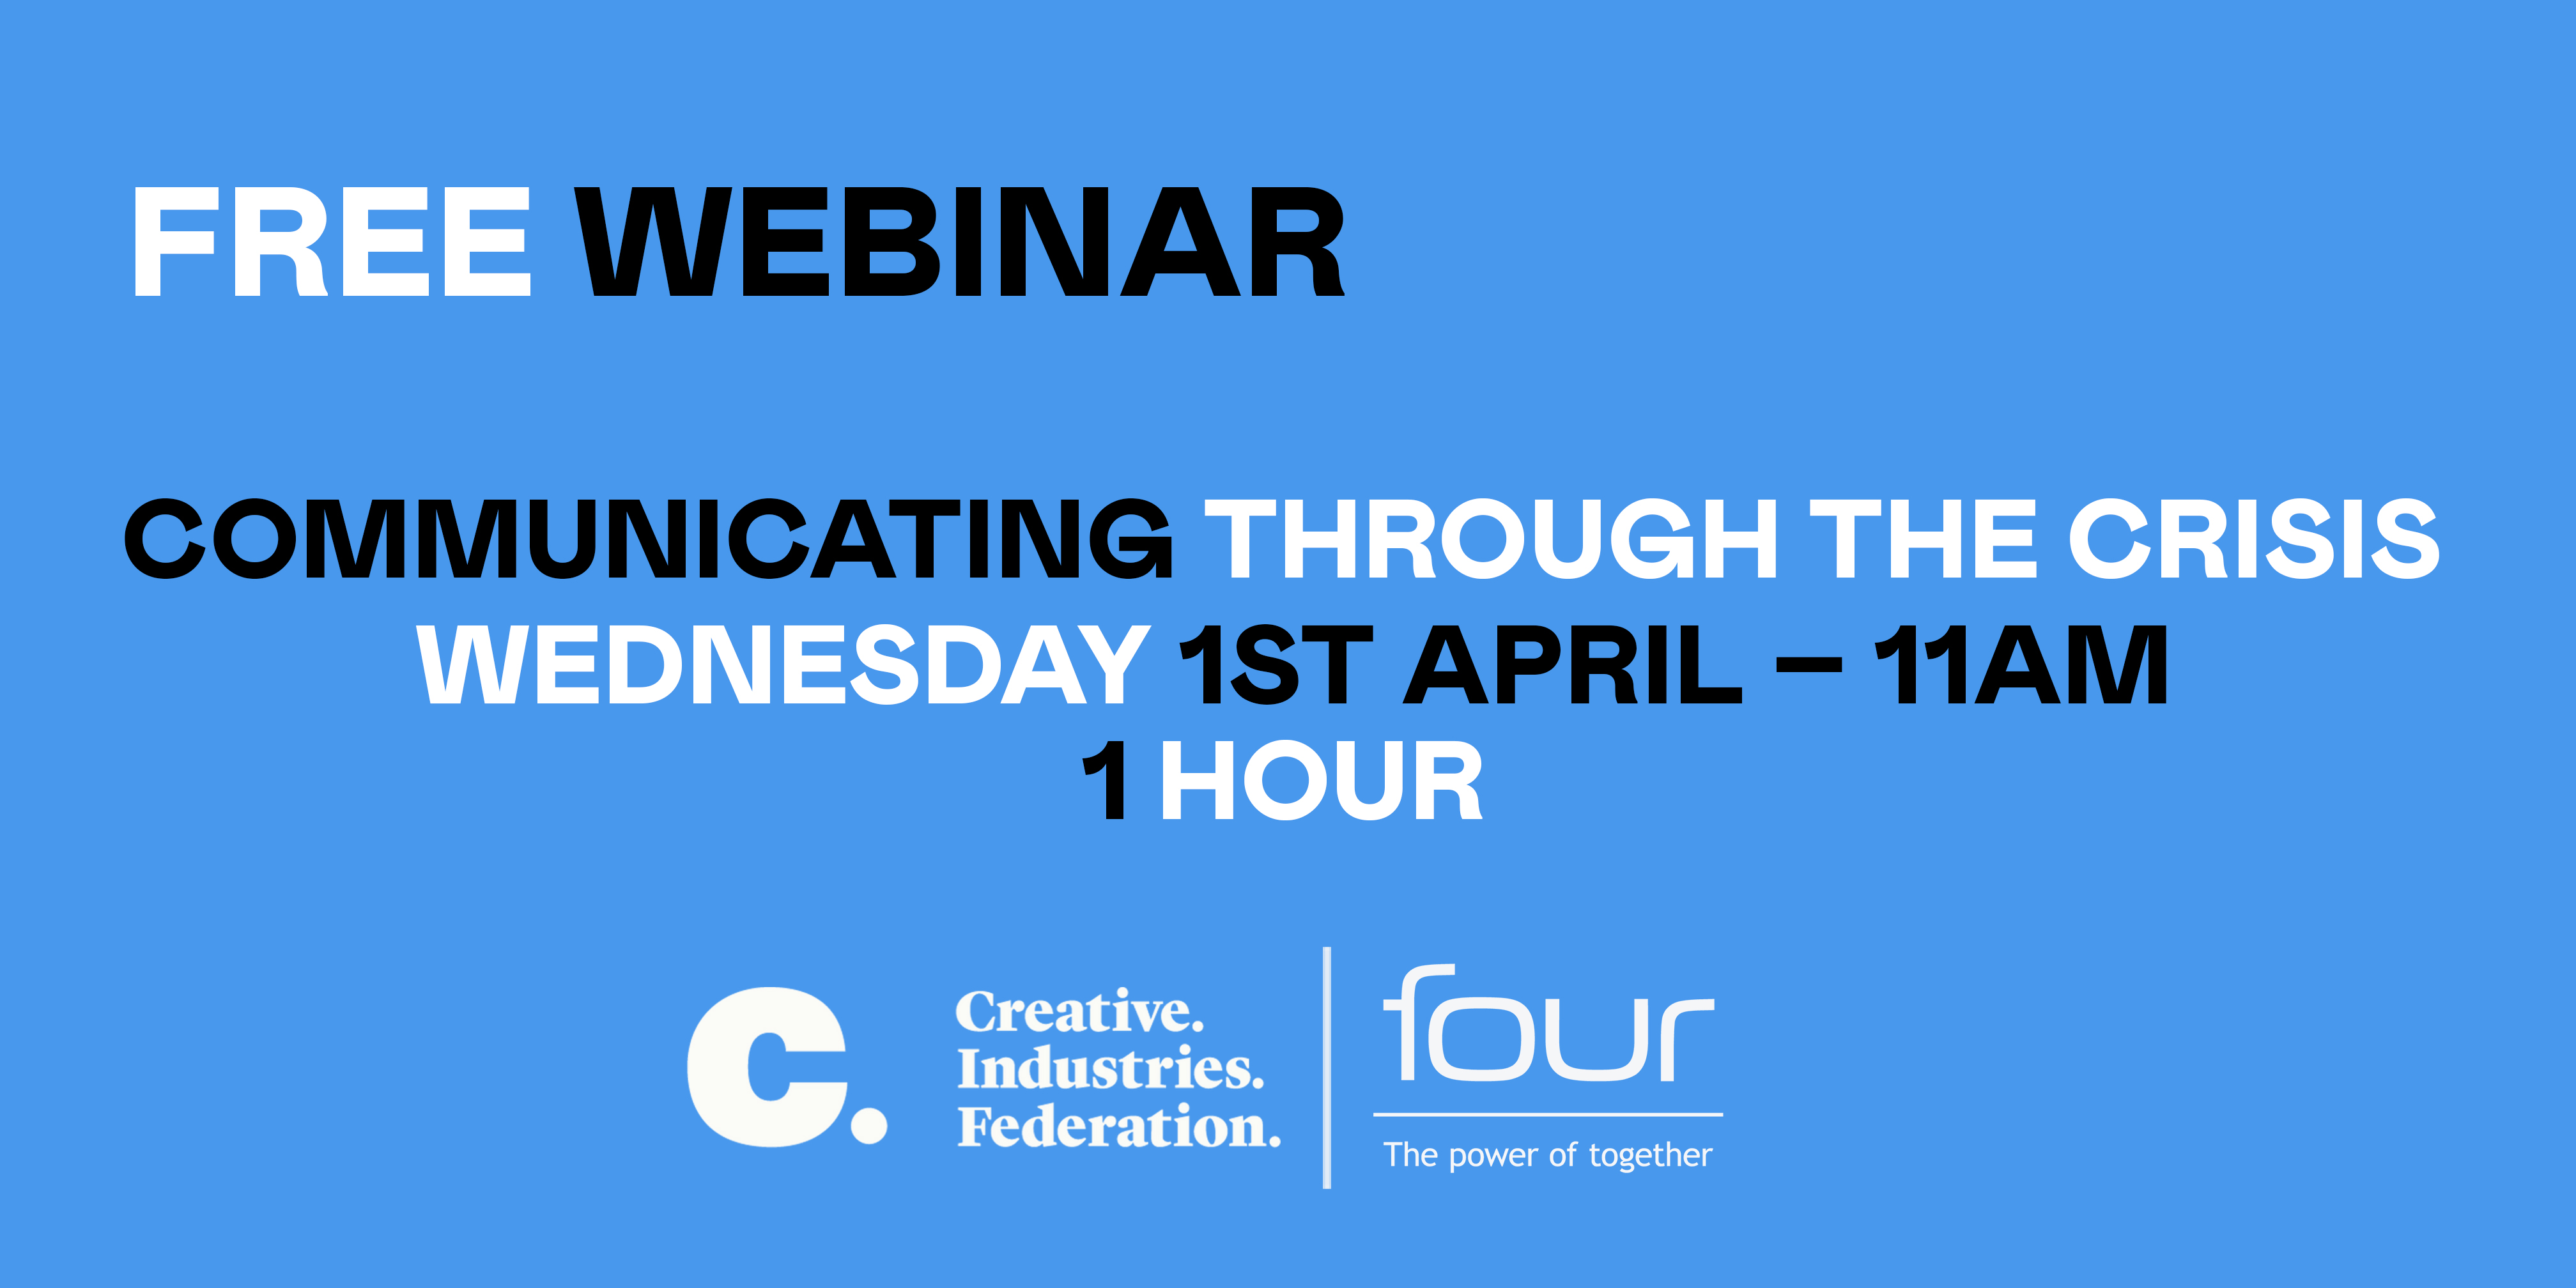 Free arts webinar on how to survive the crisis